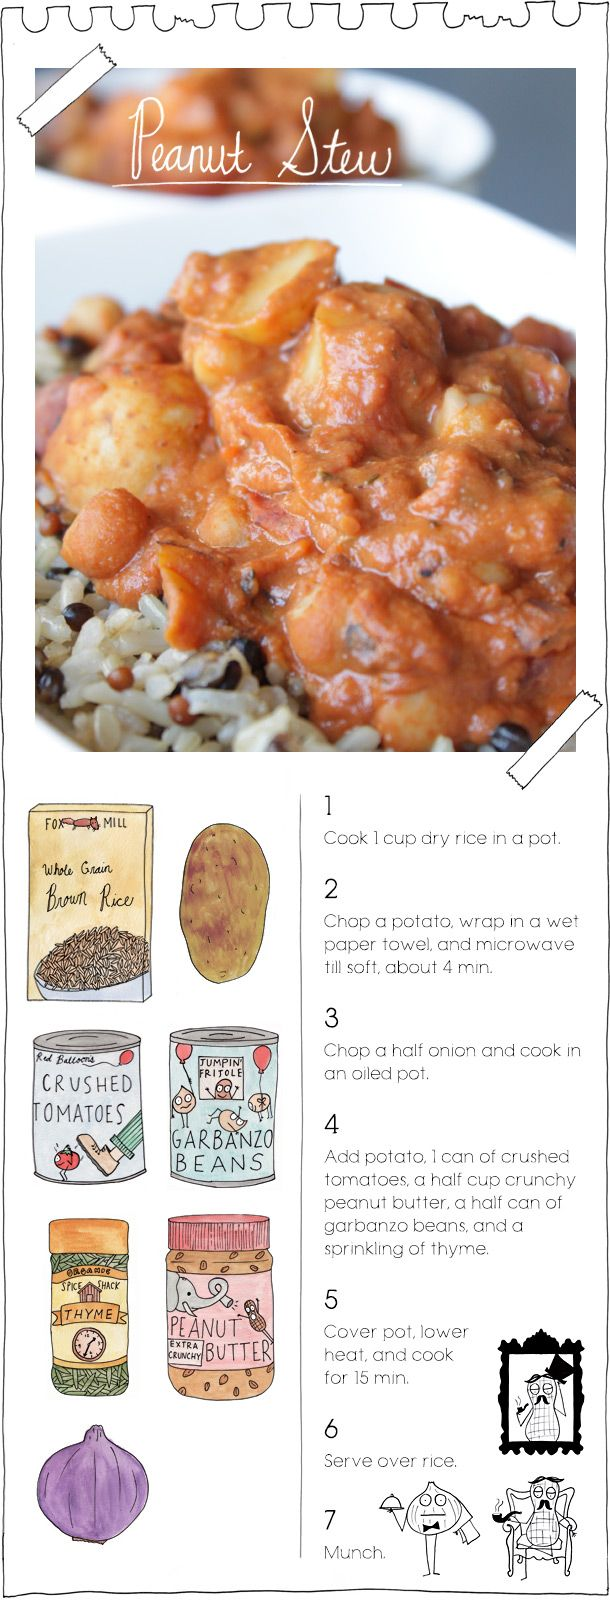 We (even Jane!) love the Vegan Stoner's Peanut Stew (+ seitan & a little chili-garlic sauce, and with whatever beans seem pleasing--chickpeas or otherwise). Fast easy hippie food hooray.